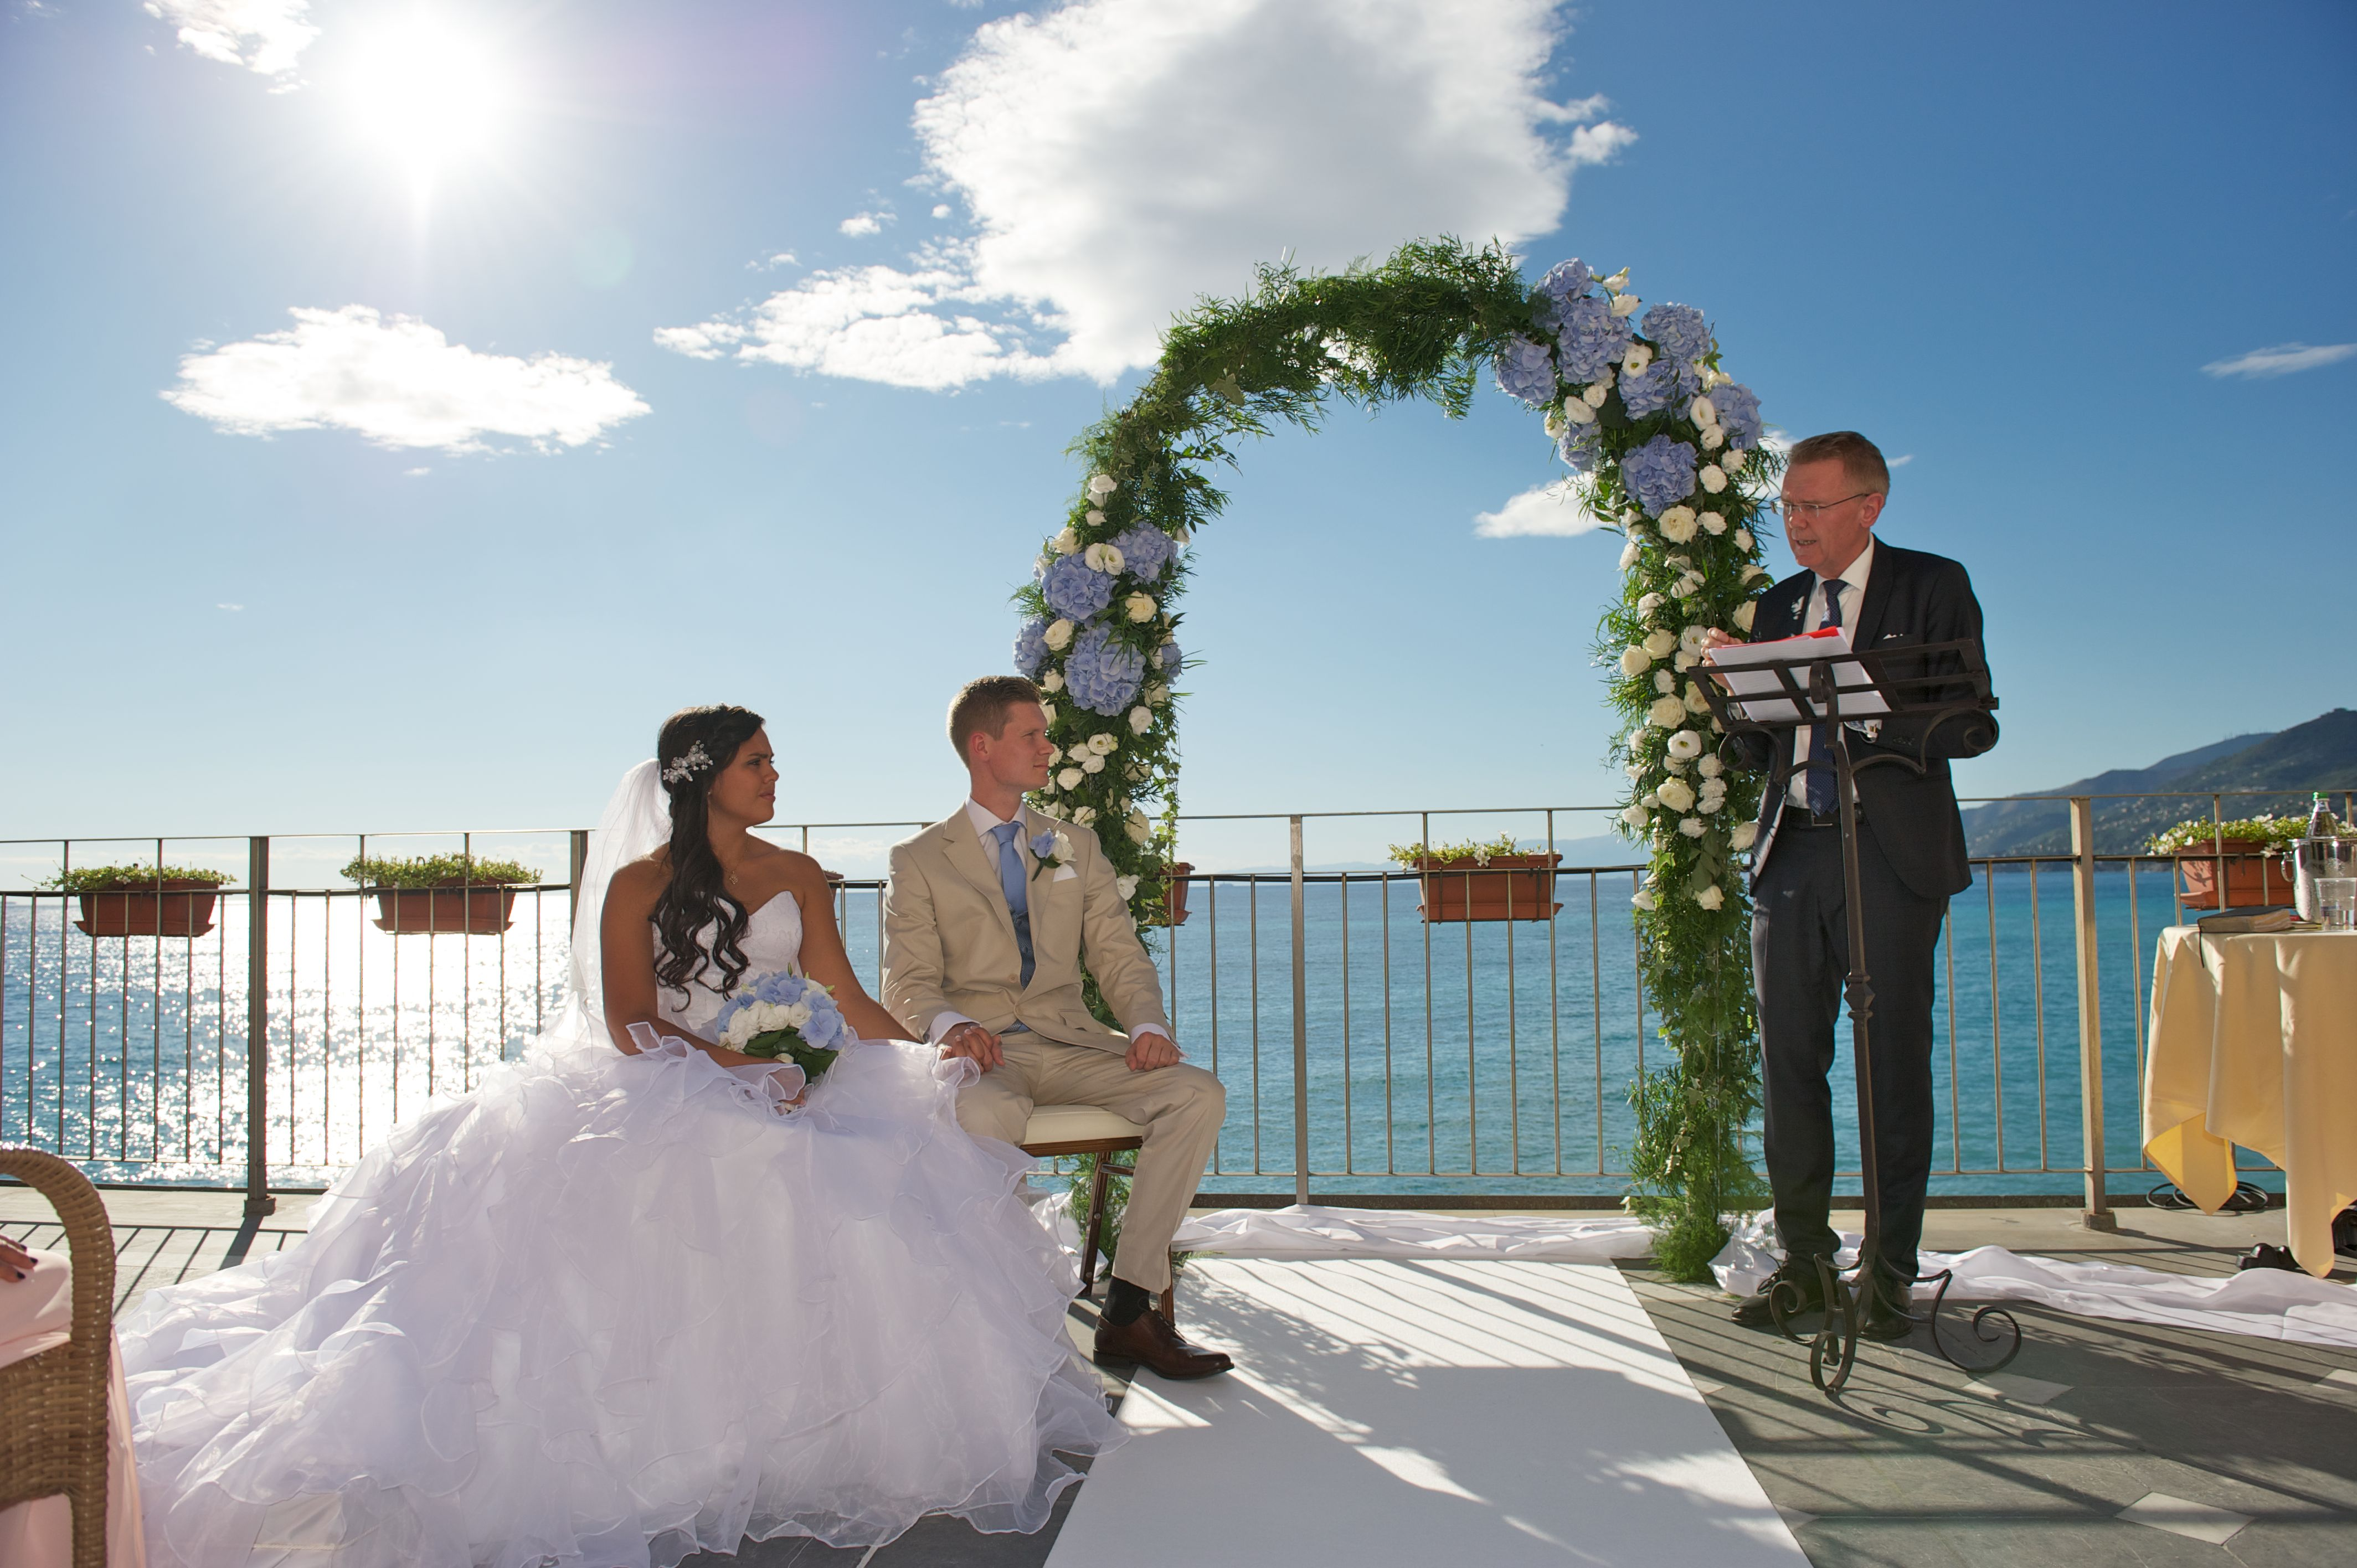 Spring Wedding Day – a day dedicate to the brides and grooms to be